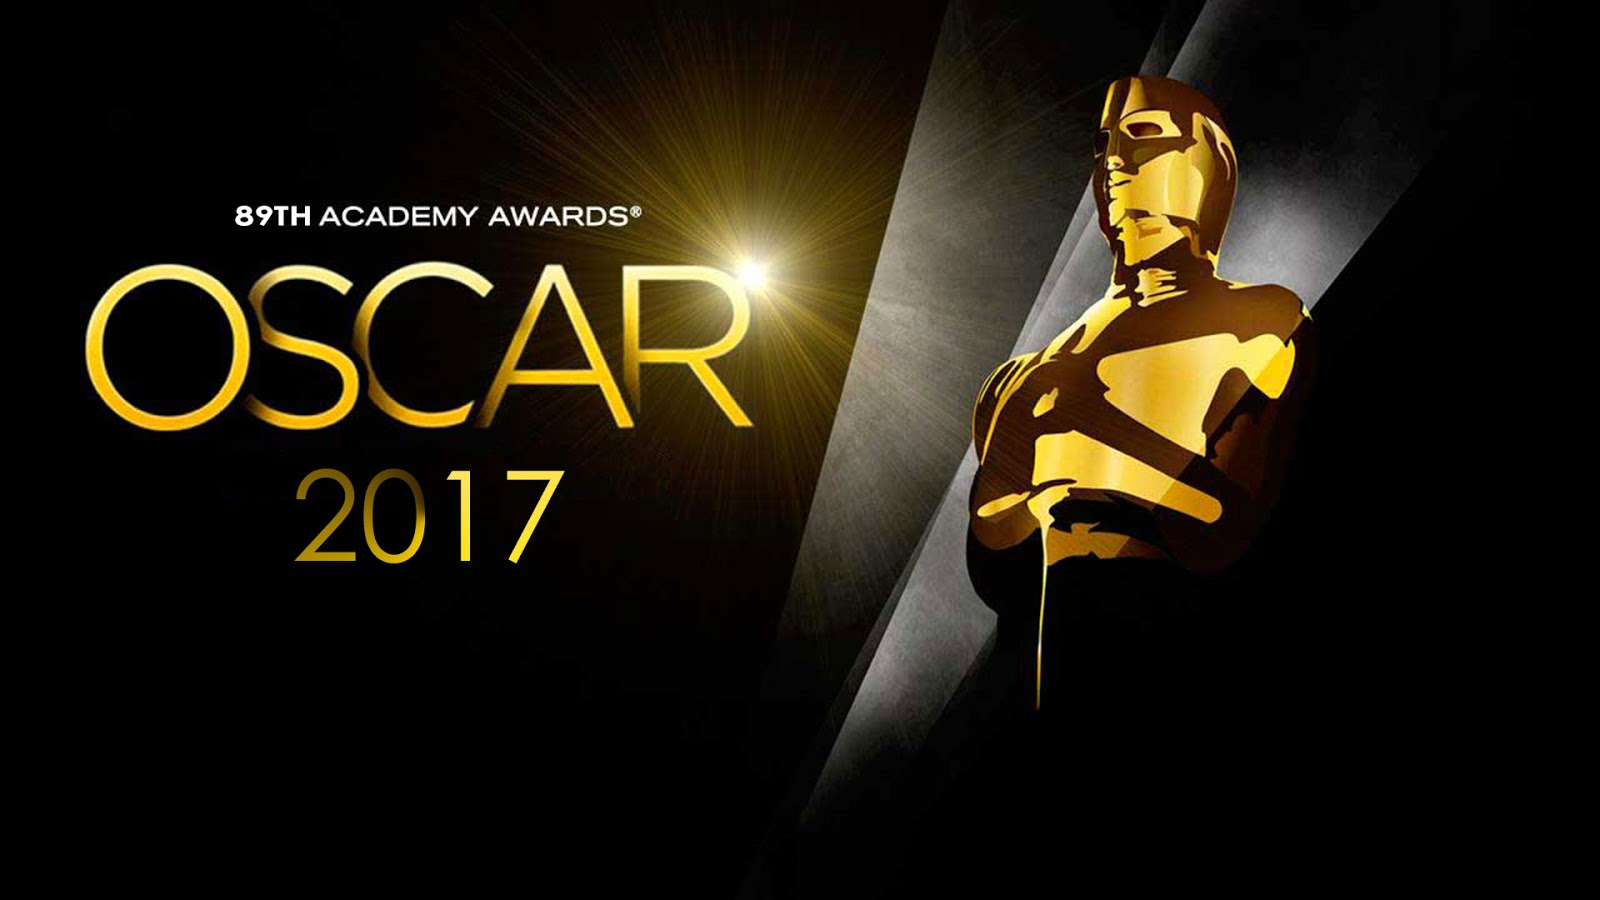 2017-oscars-89th-academy-awards thty